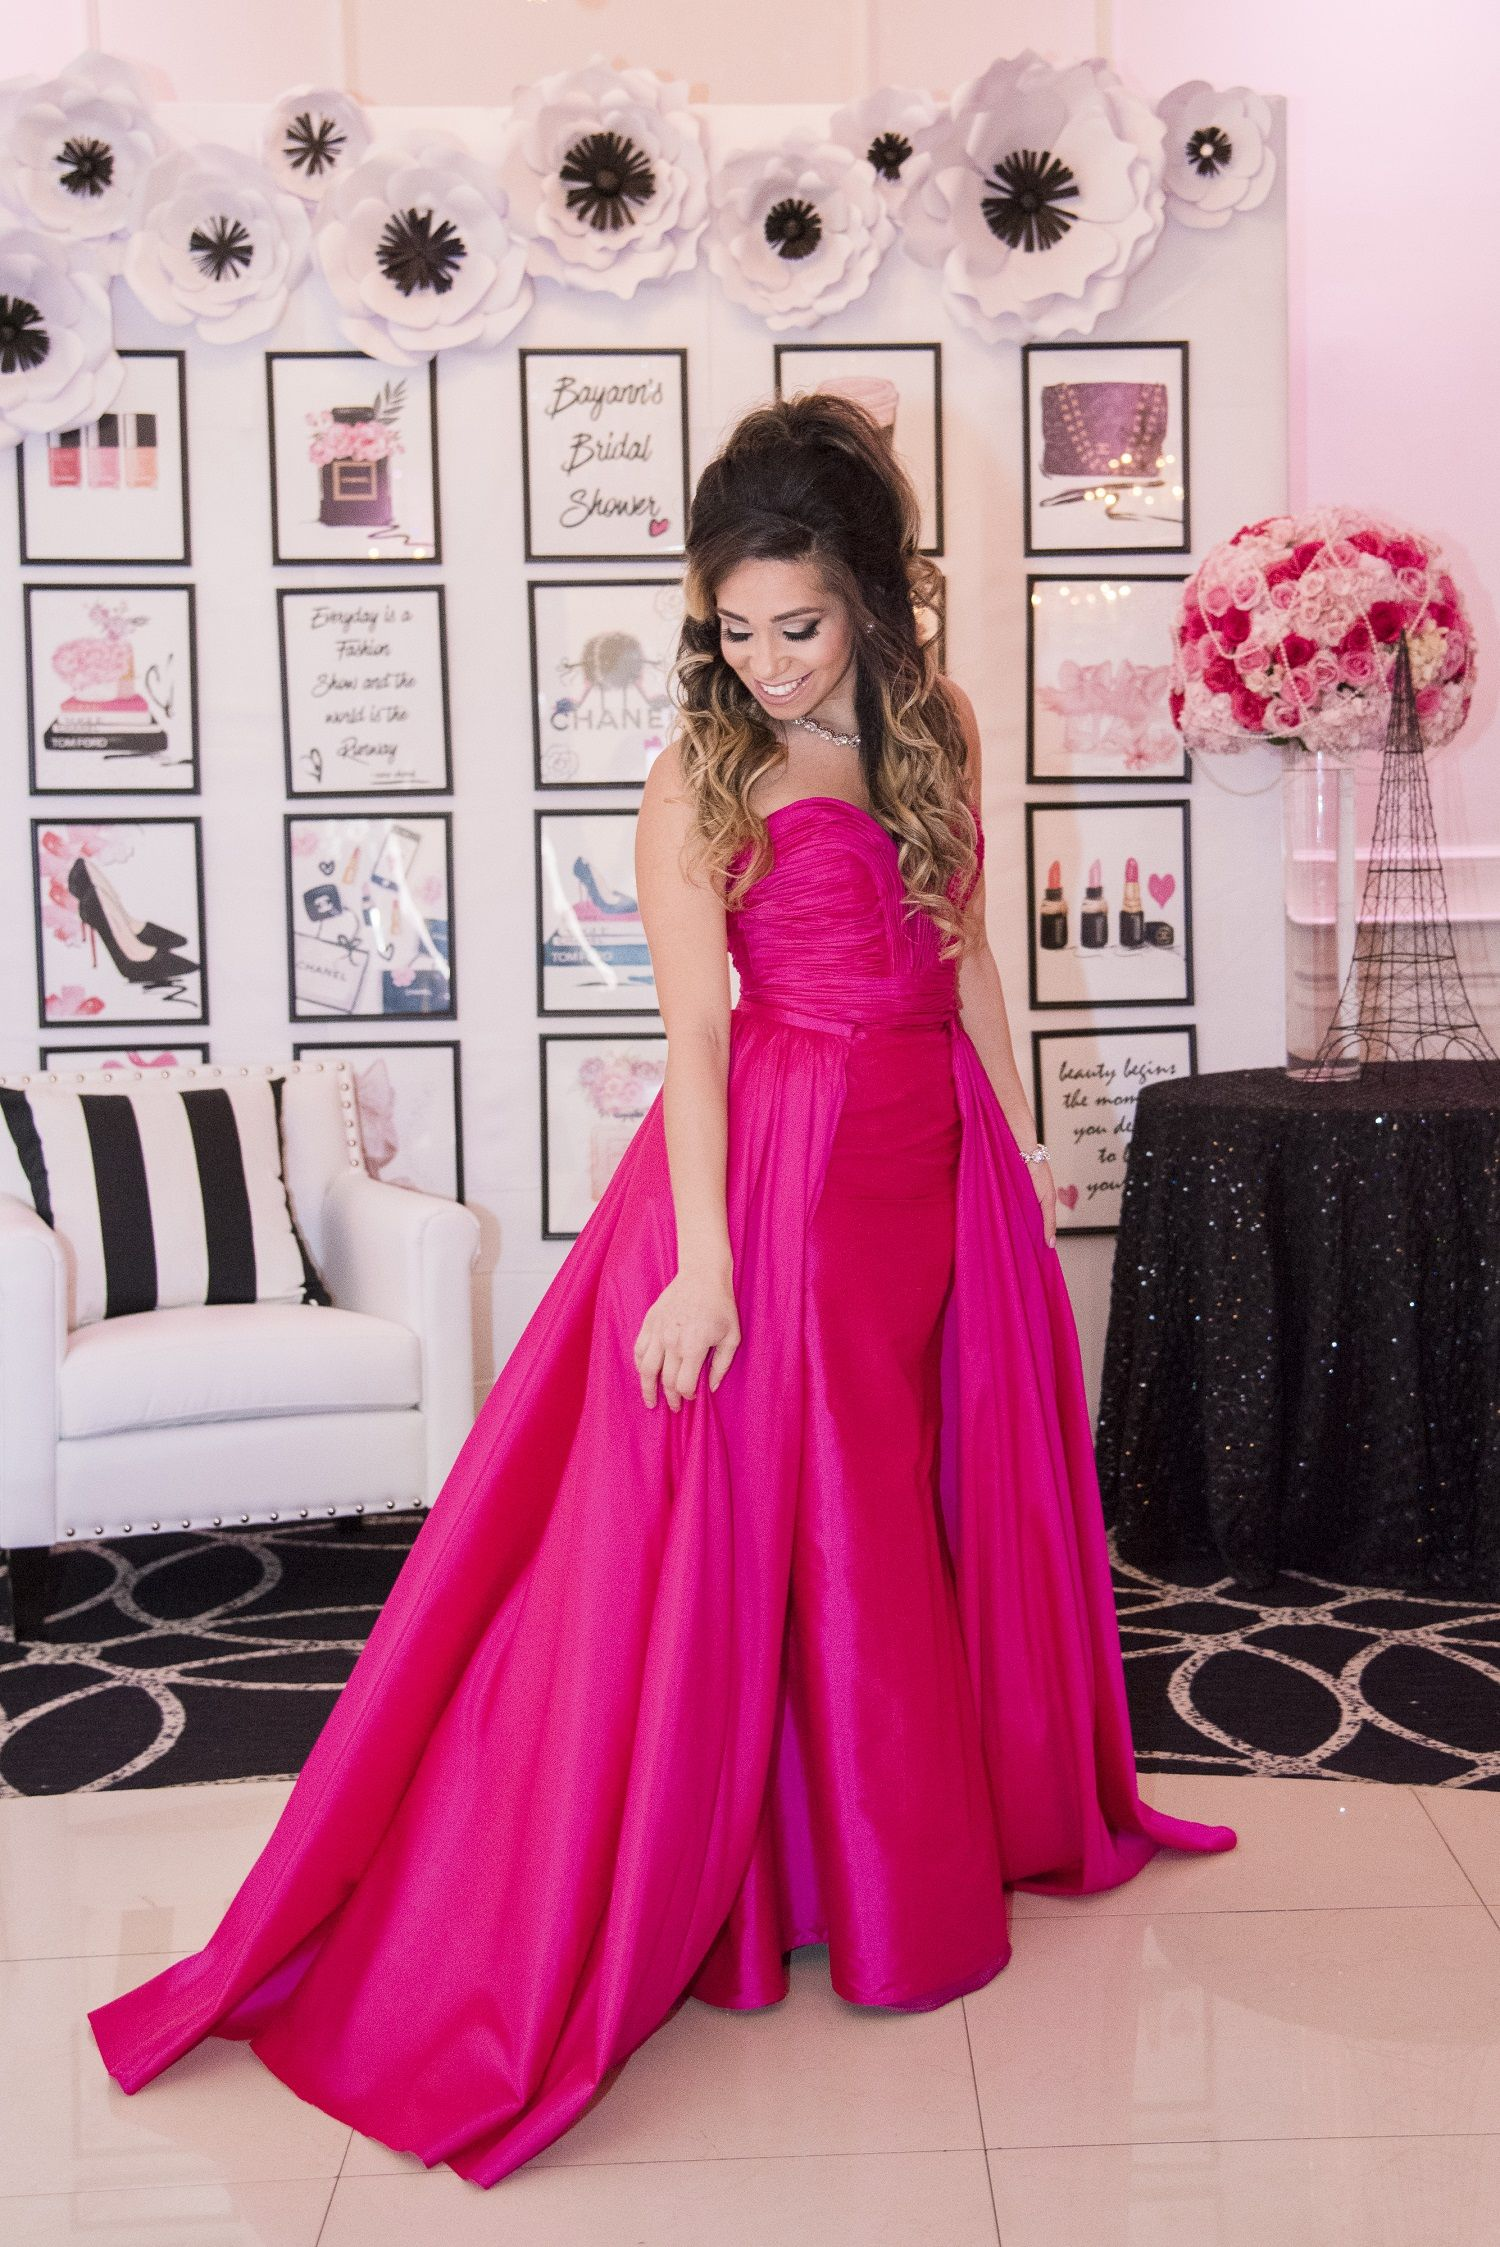 Chanel you later! A Perfume Themed Bridal Shower in Hot Pink | Pinterest